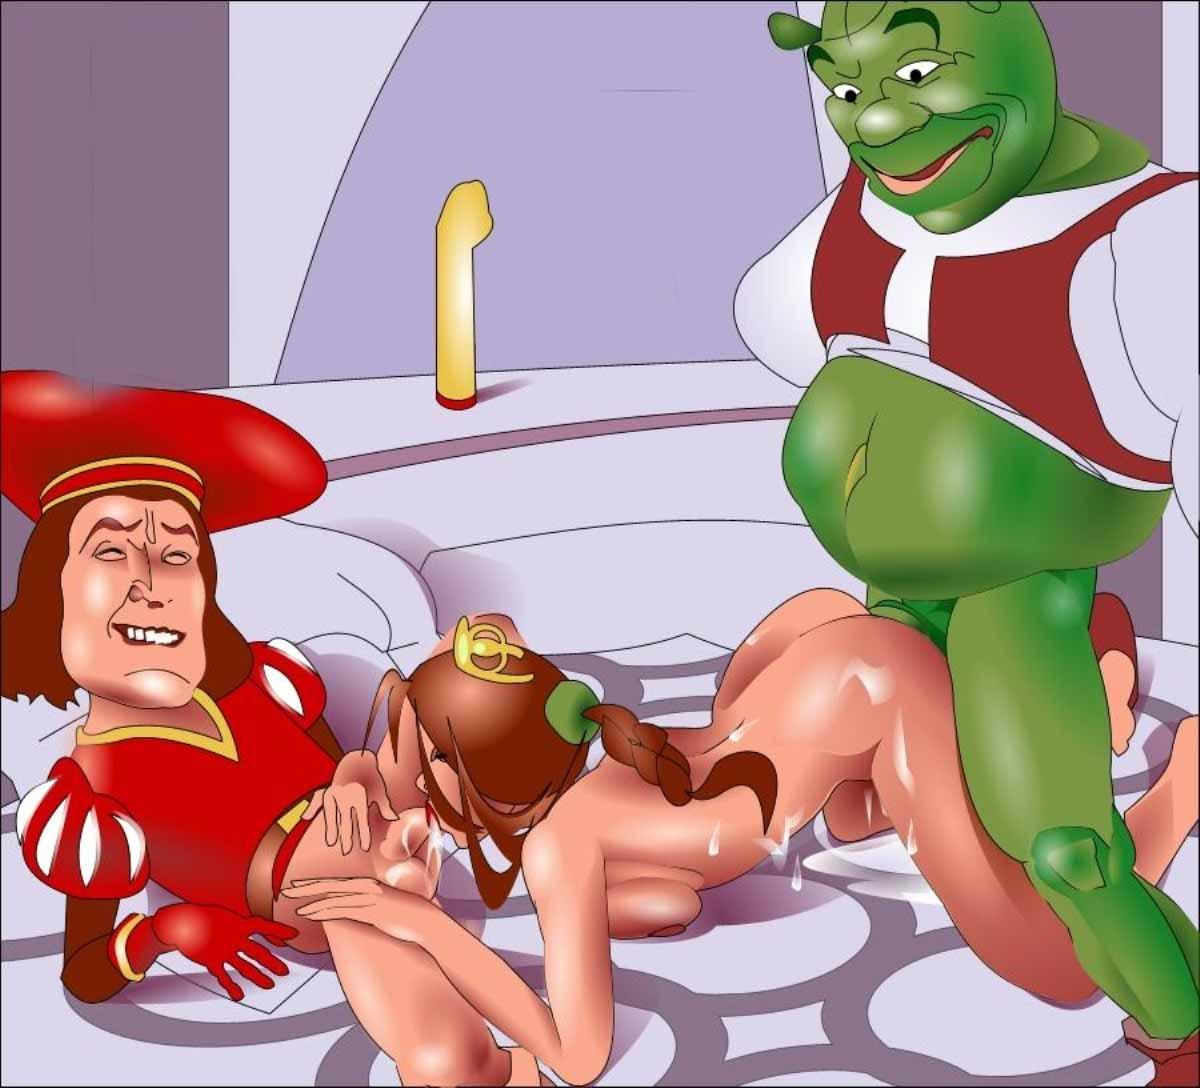 Free sex shrek and fiona erotic images